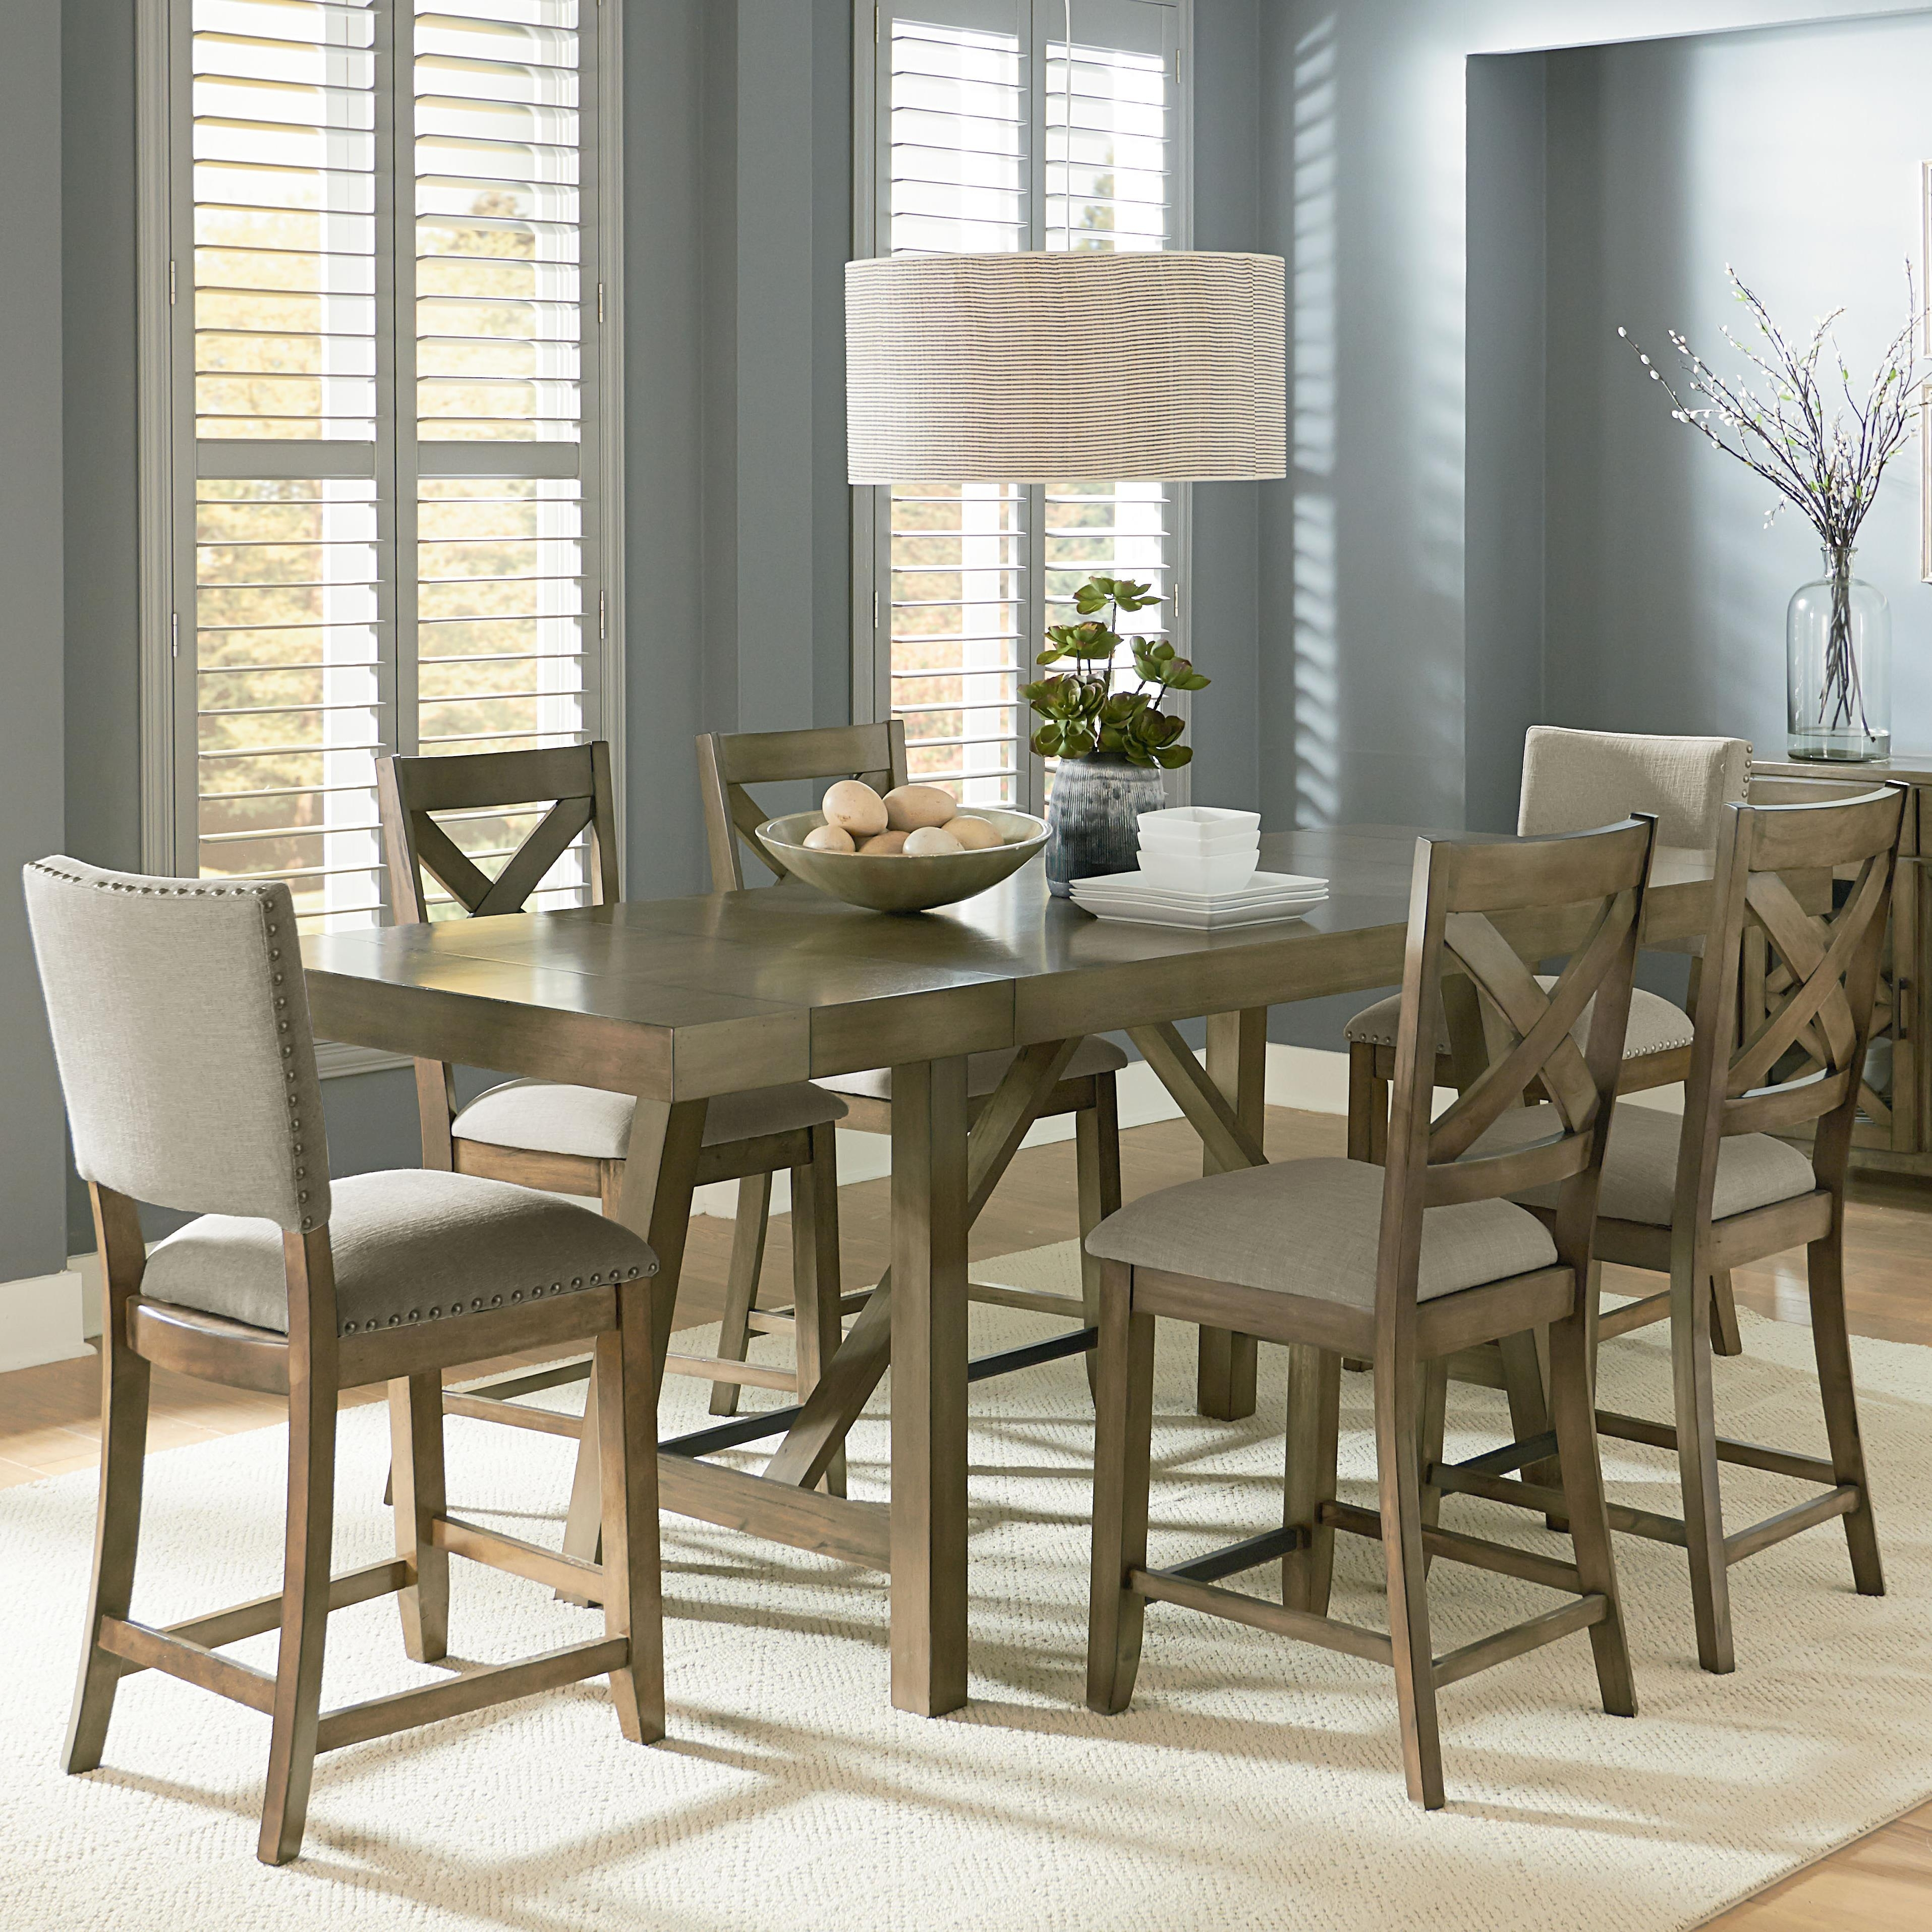 Counter Height 7 Piece Dining Room Table Setstandard Furniture Pertaining To 2017 Parquet 6 Piece Dining Sets (Image 6 of 20)